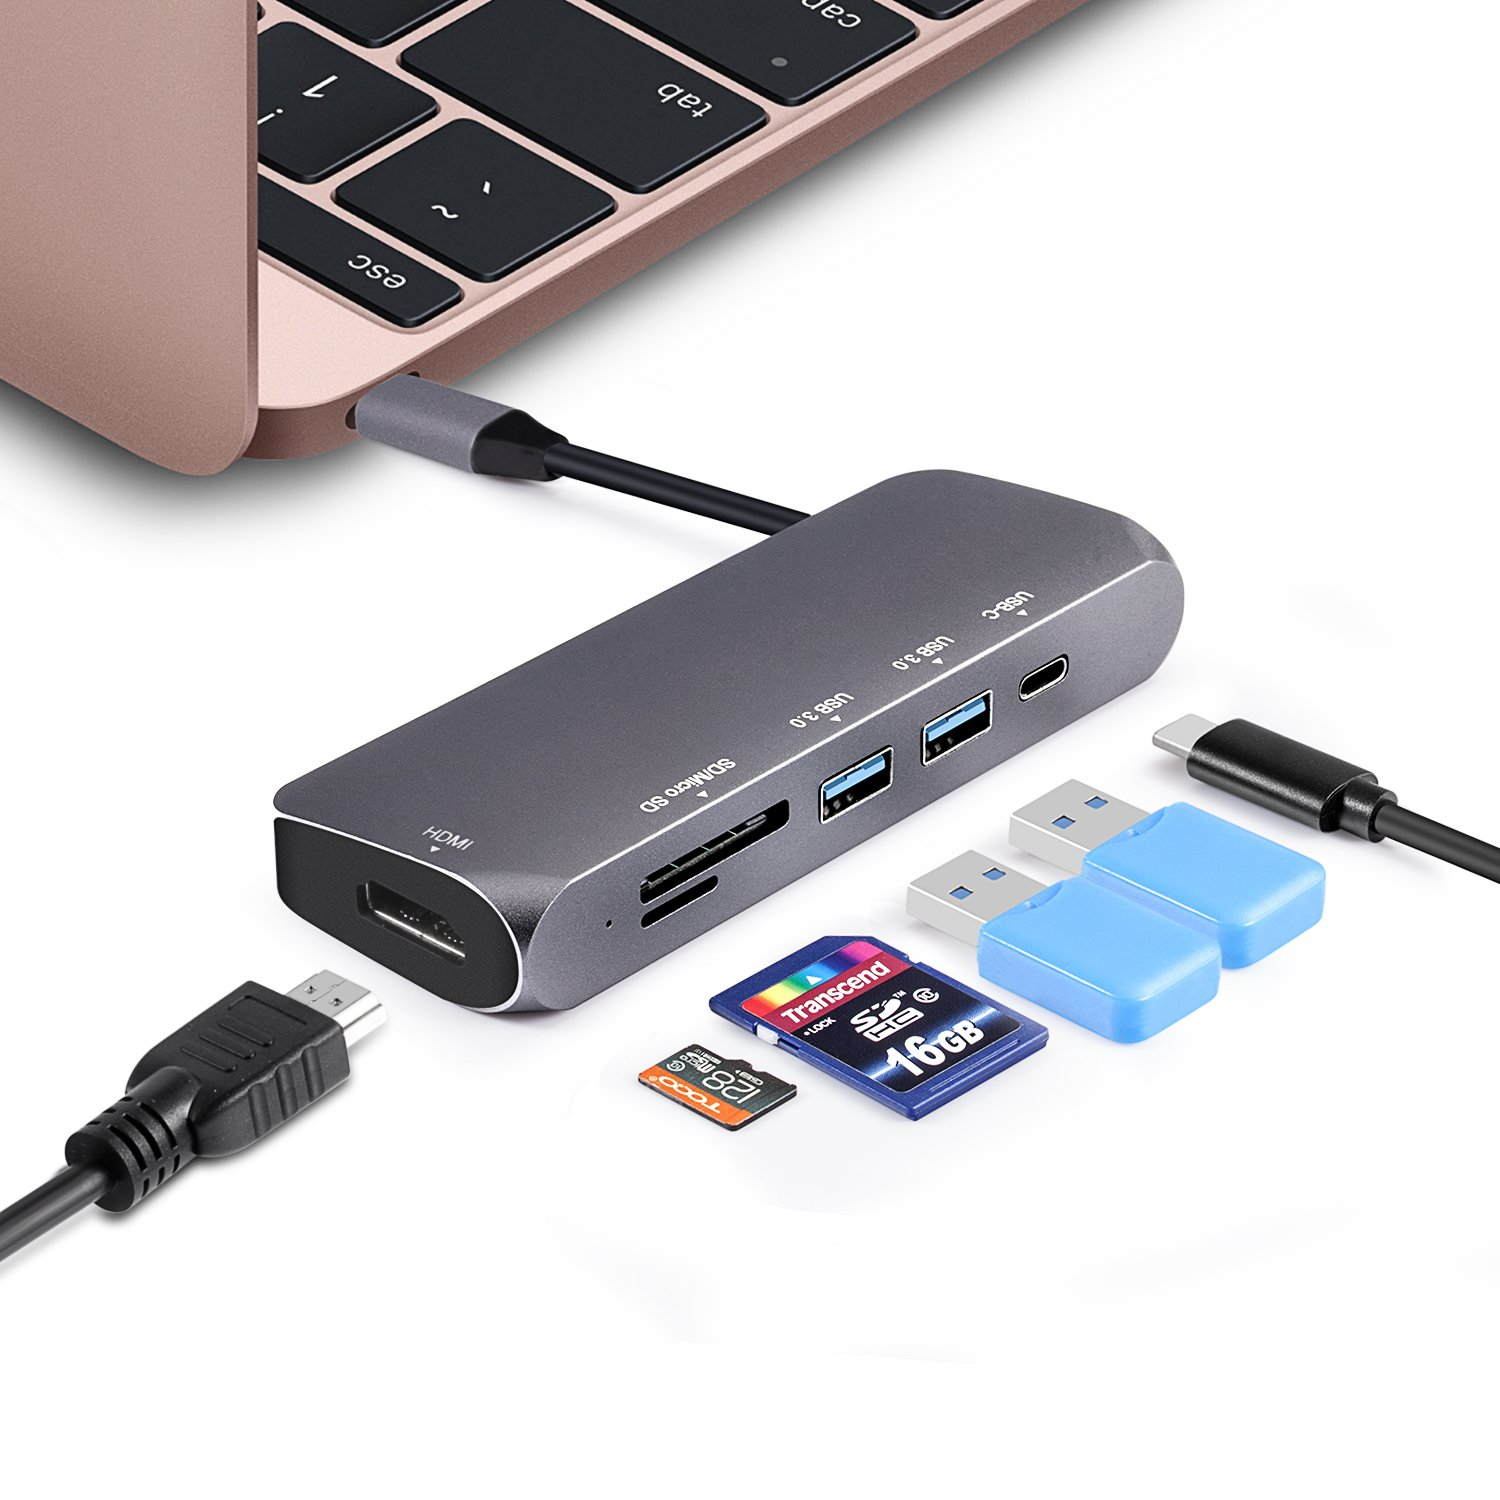 USB-C to HDMI HUB, 3XI USB-C to HDMI 4K Aluminium HUB with 2 USB 3.0 Ports and SD/TF Card Readers support Power Delivery for MacBook Pro and More USB C Devices -Space Gray